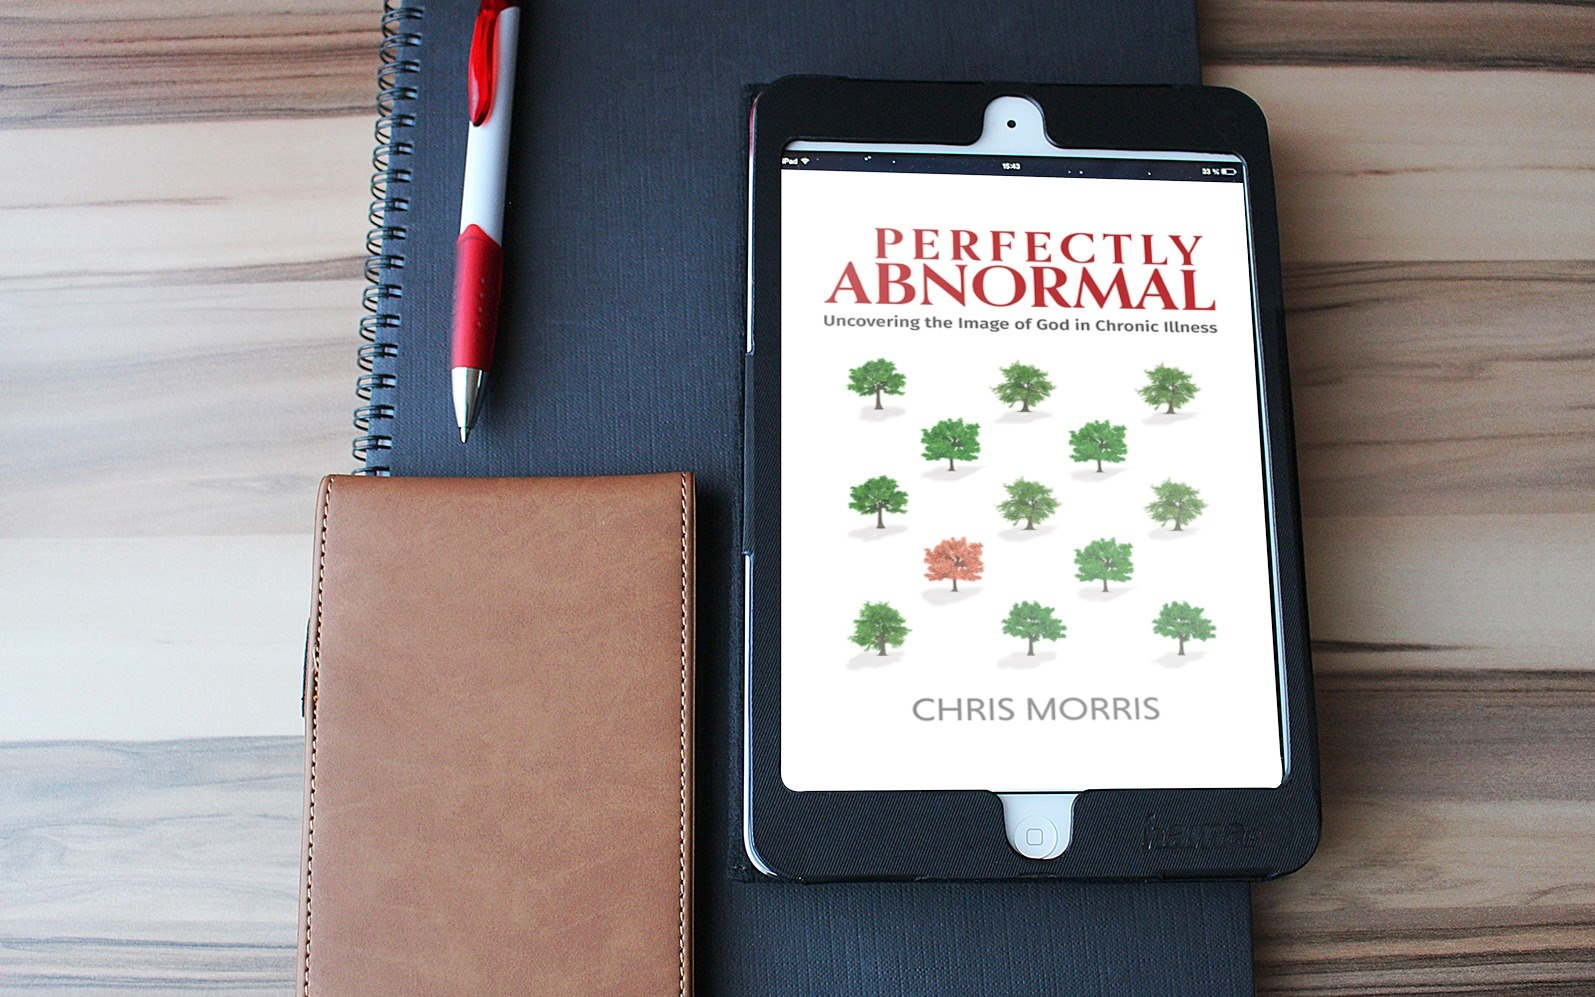 Perfectly Abnormal, an interview with Chris Morris